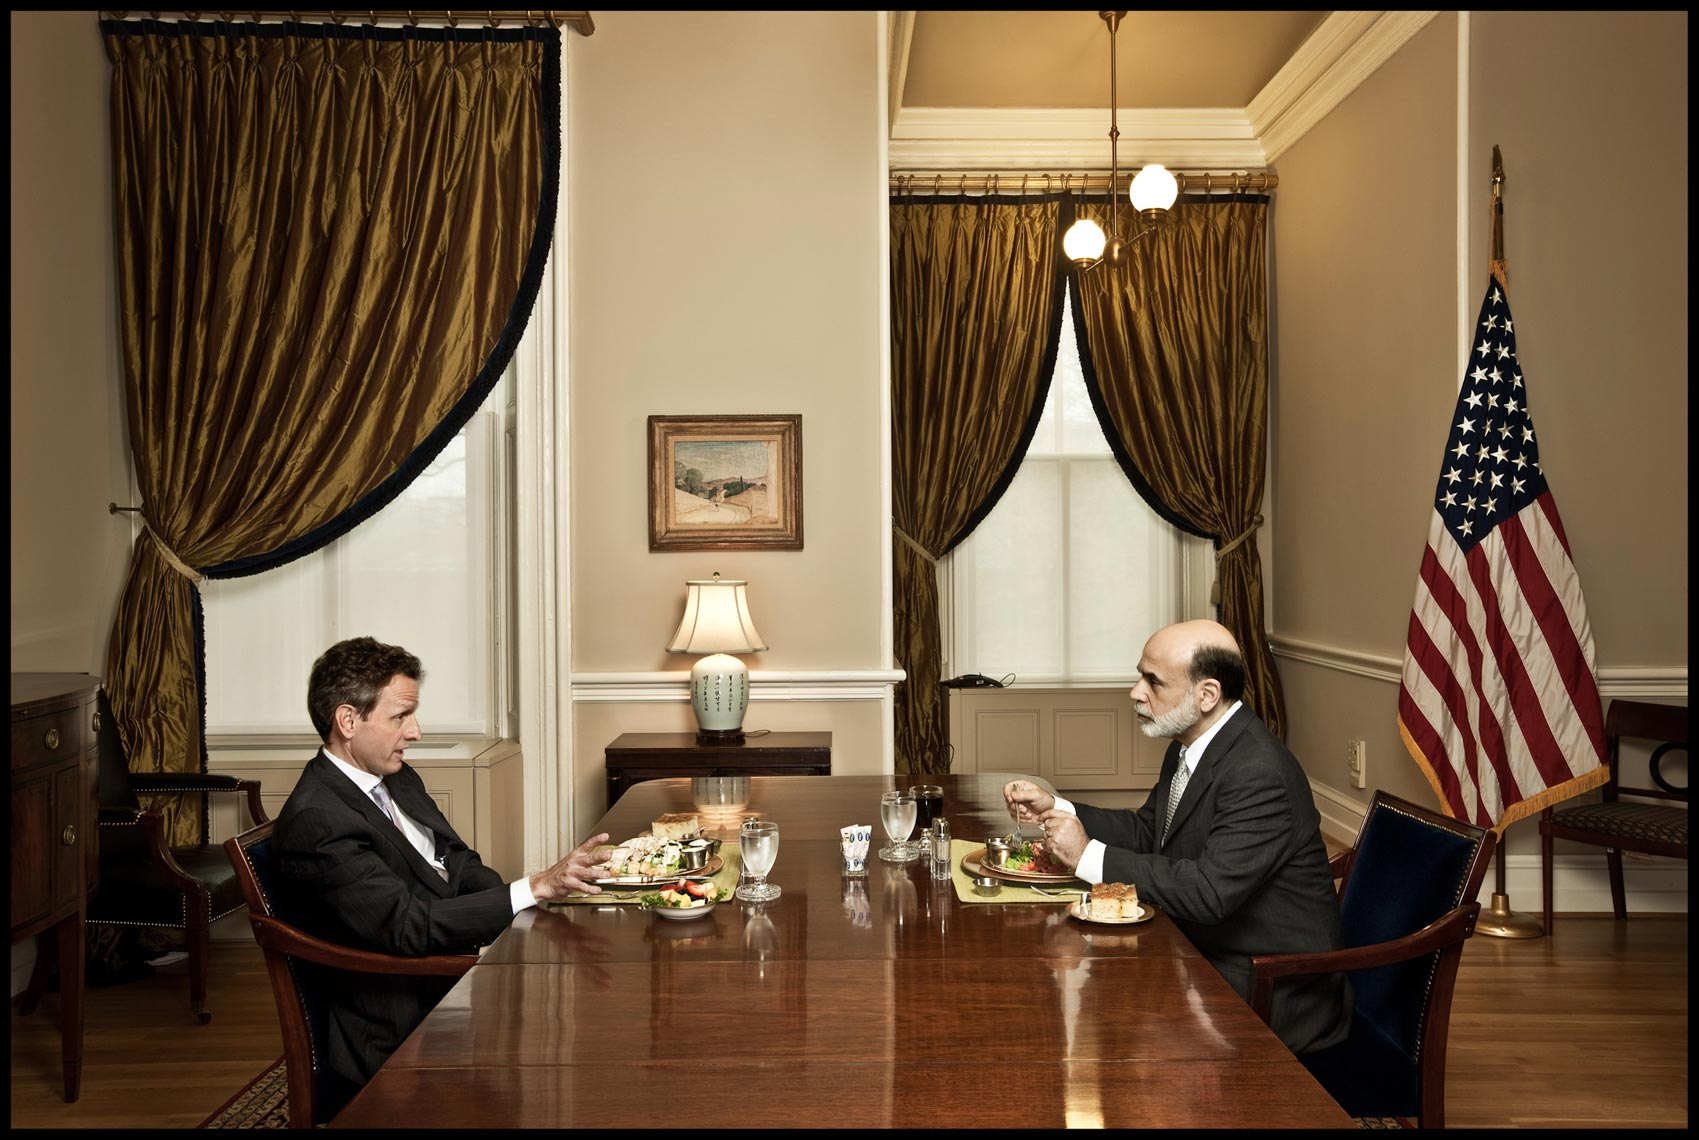 Treasury Secretary Geithner and Fed Chairman Bernanke Discuss Issues over their weekly lunch - Washington, D.C. - Time Magazine (Man of The Year)